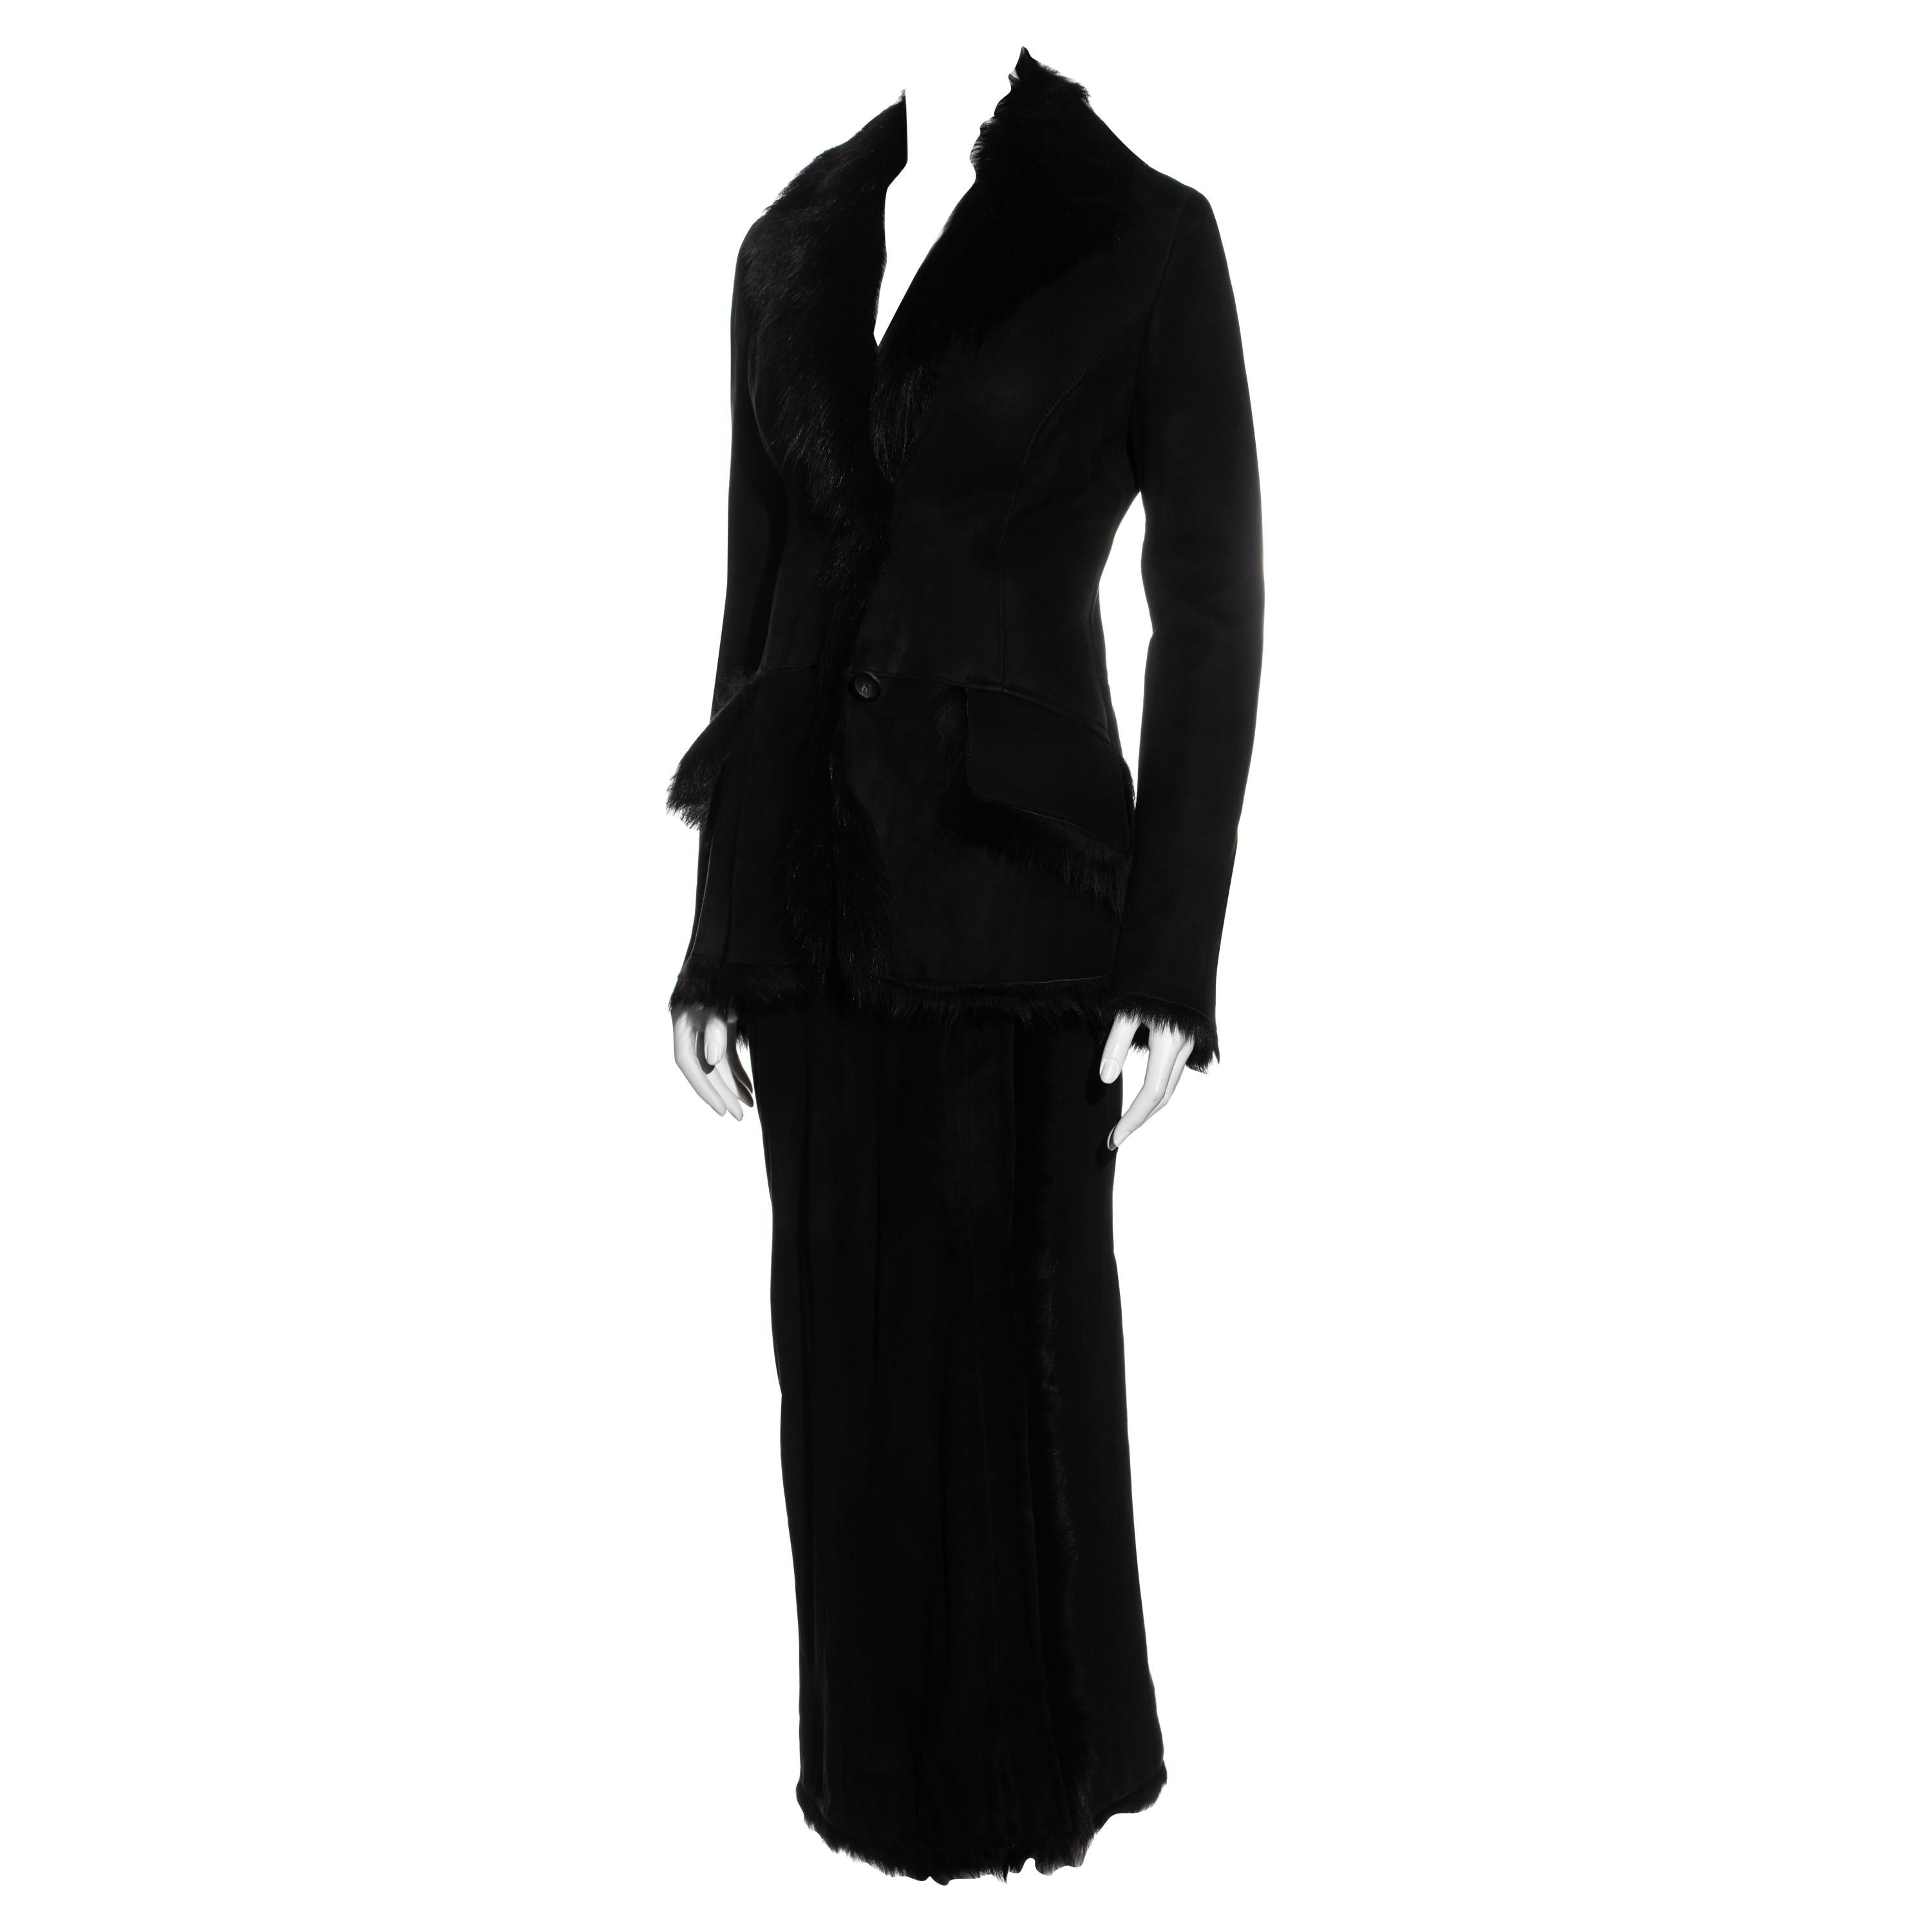 Gucci by Tom Ford black suede and fur jacket and maxi skirt set, fw 1996